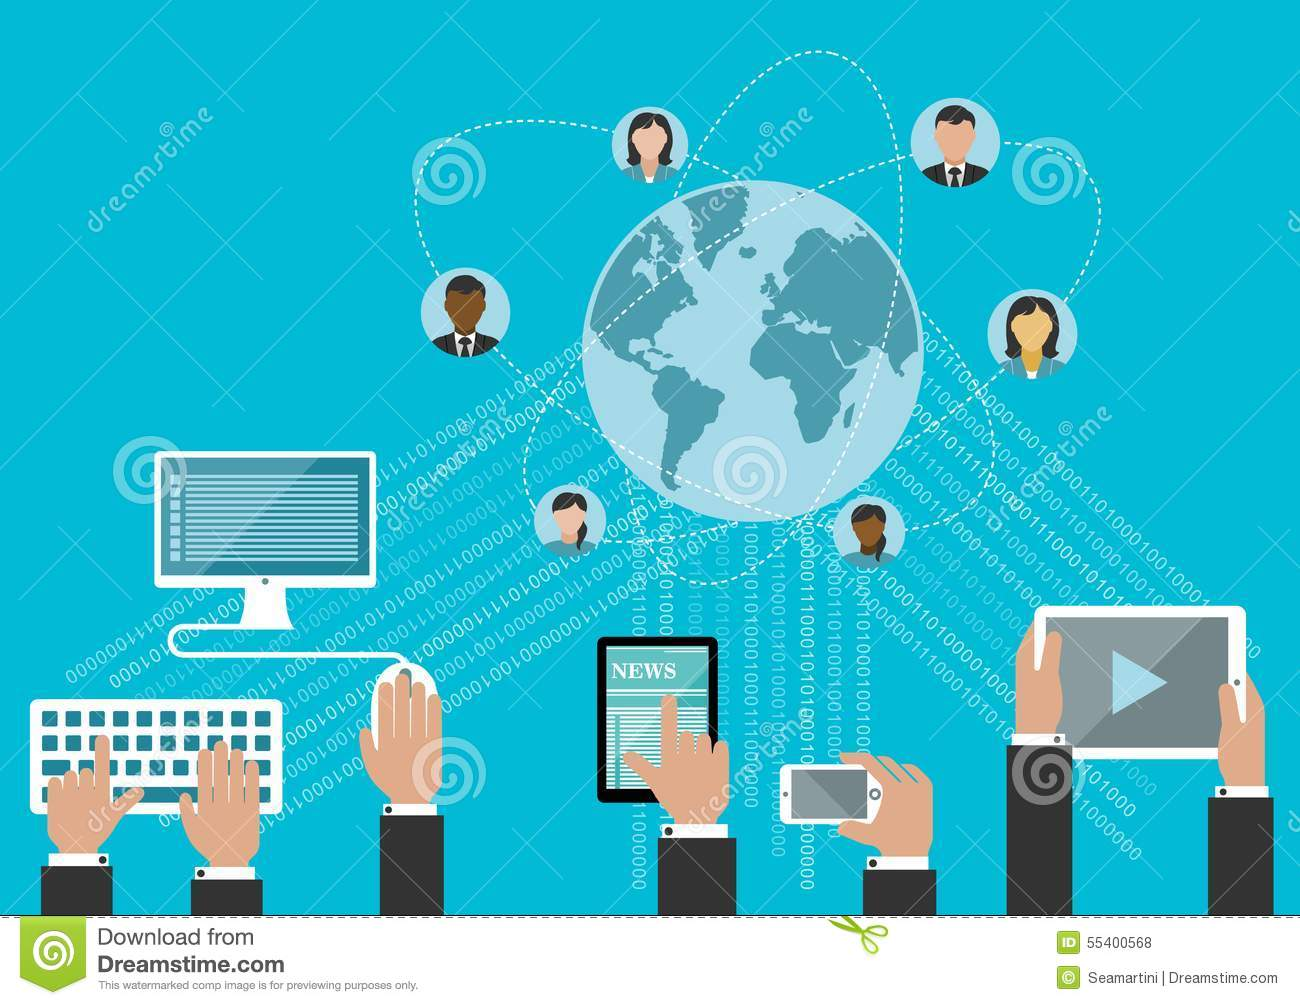 globalization via social networking essay It is because of globalization that contemporary social movements are having a wide range of resources available these resources include improved and advanced technologies and increasing interconnected networks of communication.